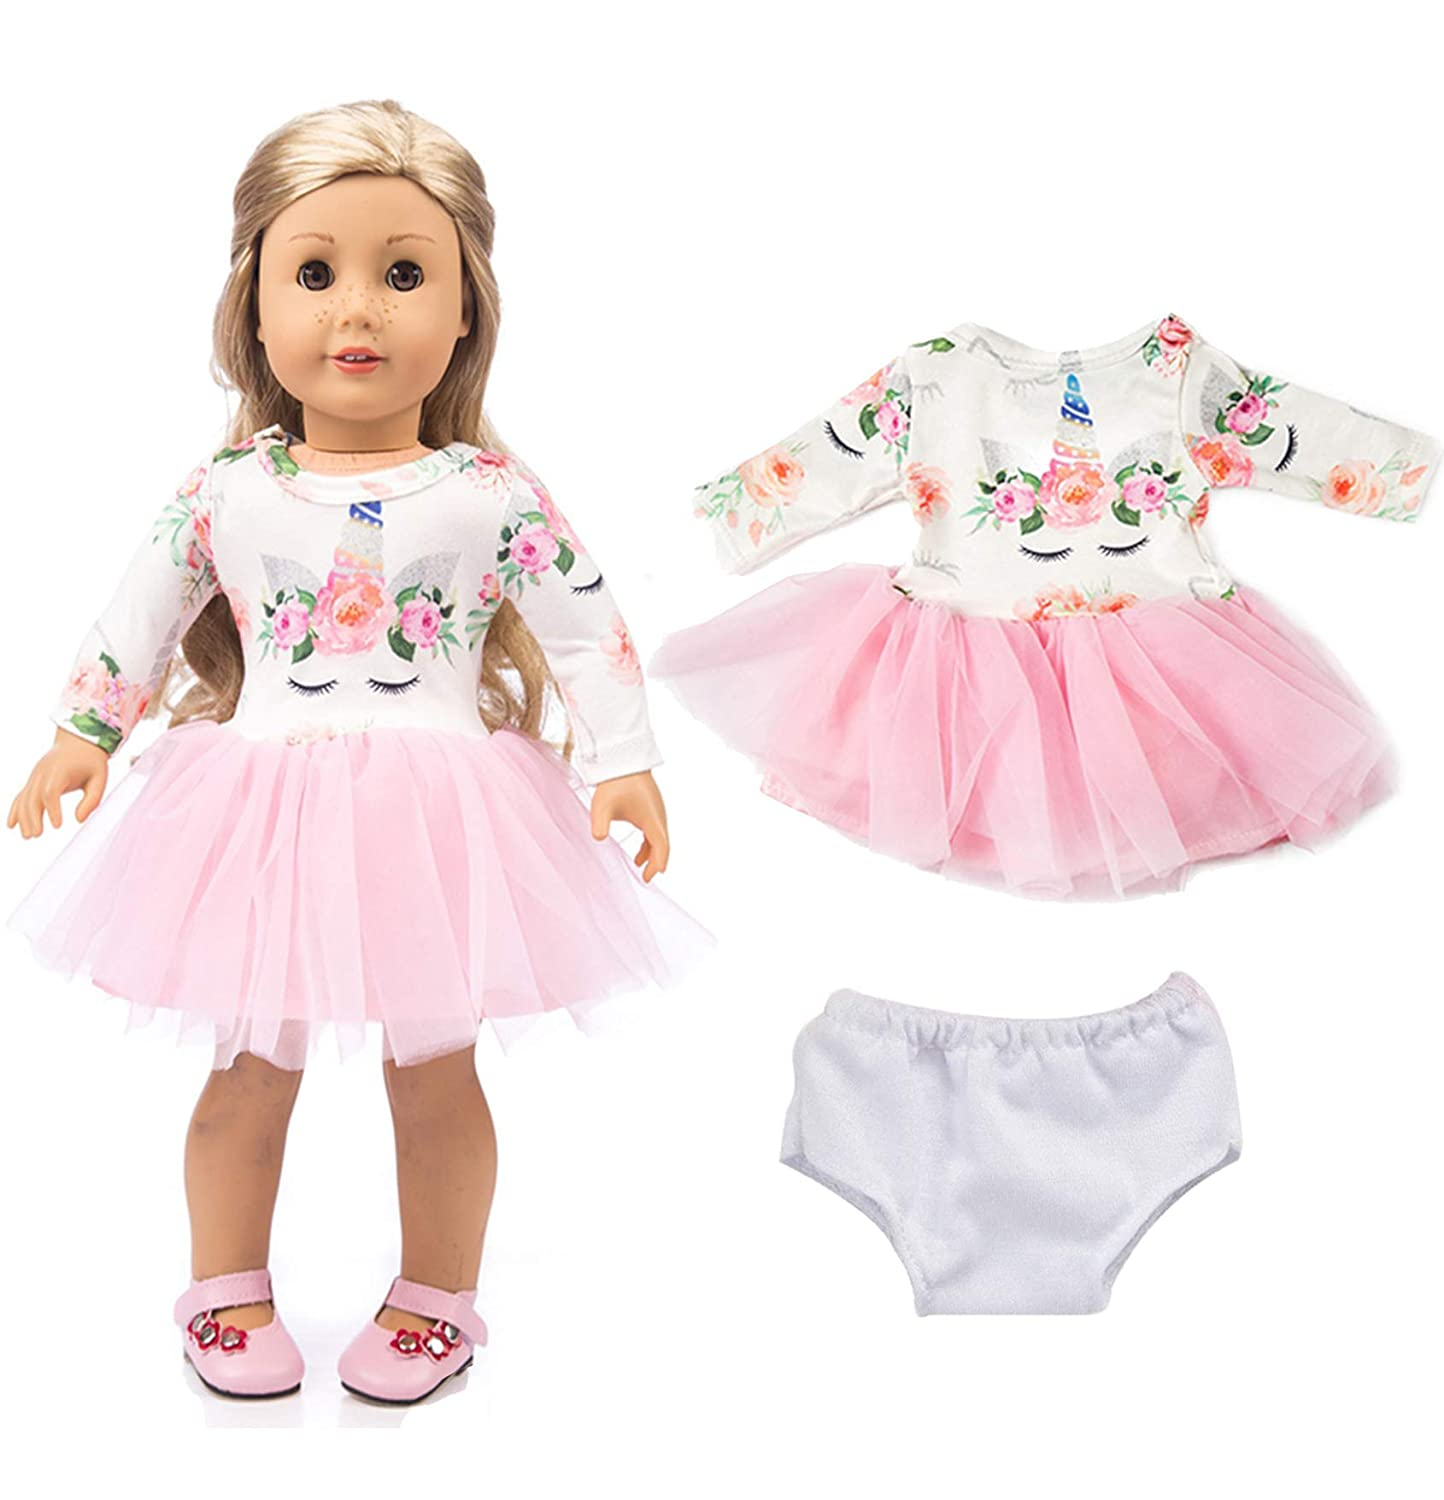 ebuddy Pink Long Sleeve Veil Soft Cotton Unicorn Doll Dress Clothes with Briefs for 18 inch Dolls Like American Girl, Journey Girl Dolls, Our Generation Dolls